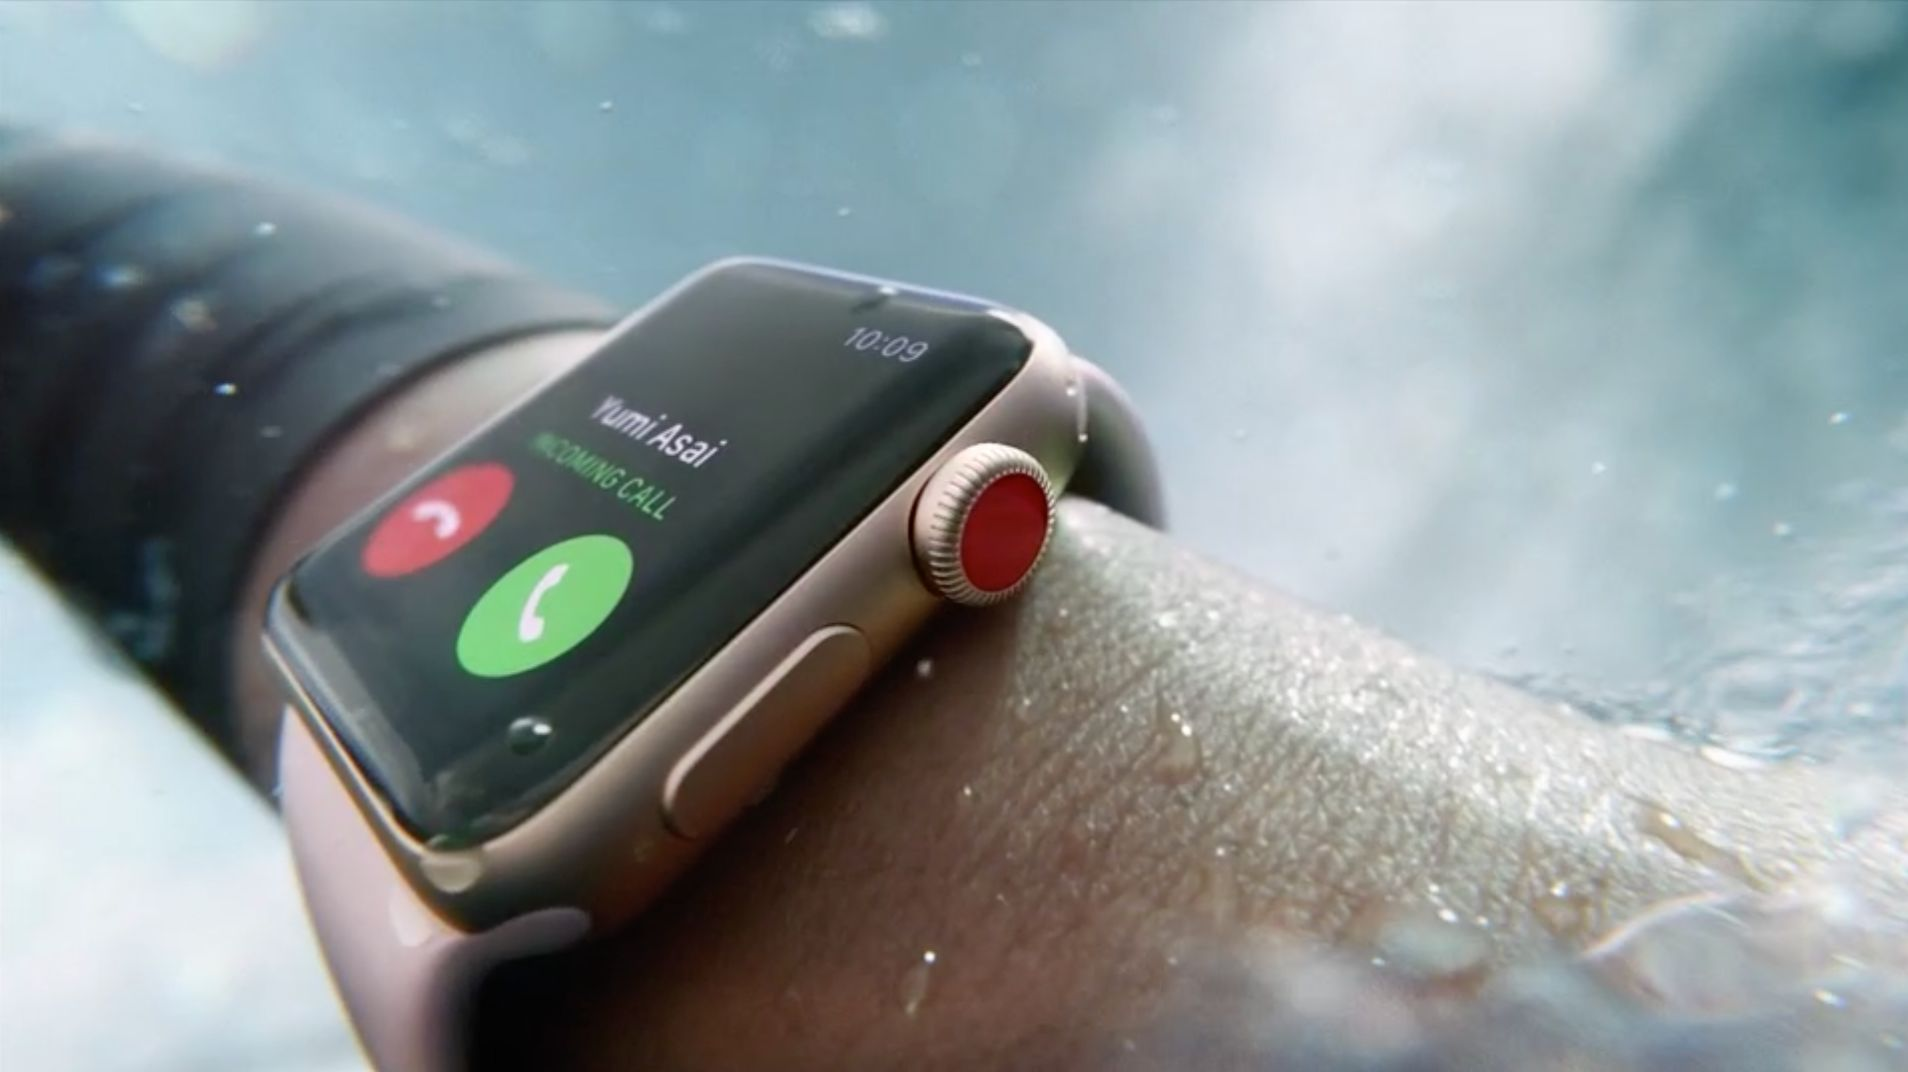 The New Apple Watch Can Now Make Phone